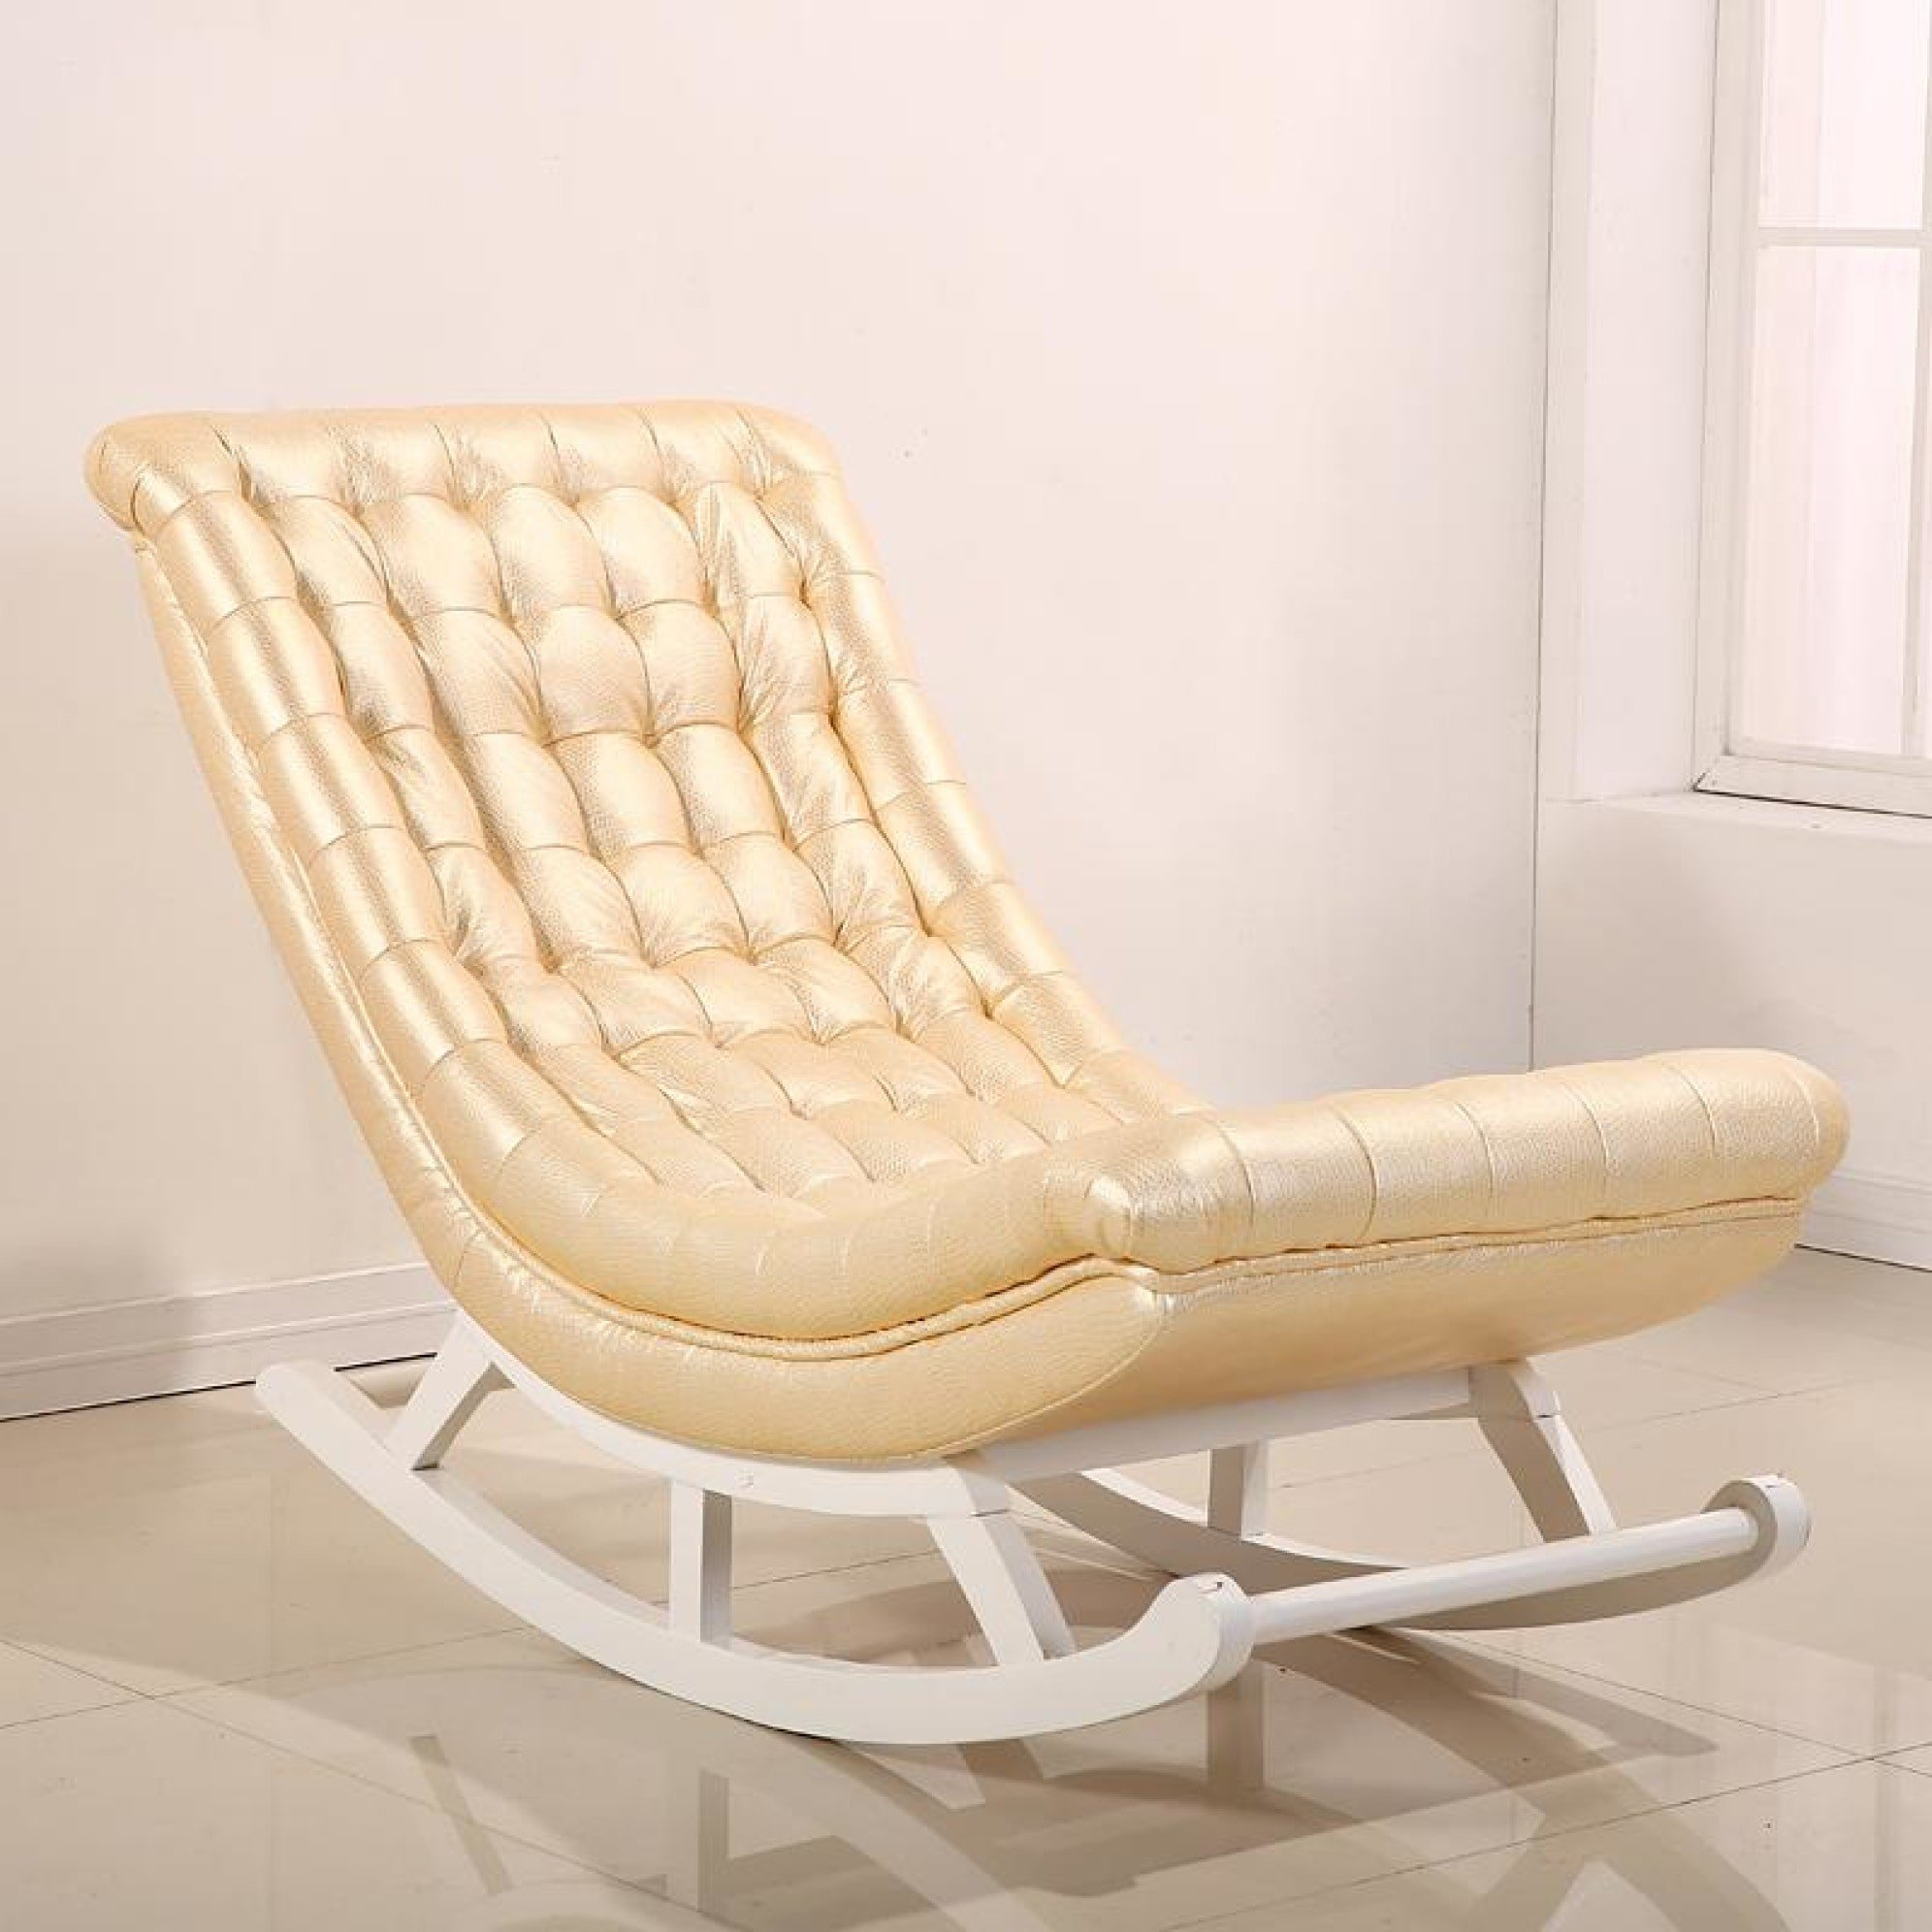 Image of Glossy Leather Rocking Chair